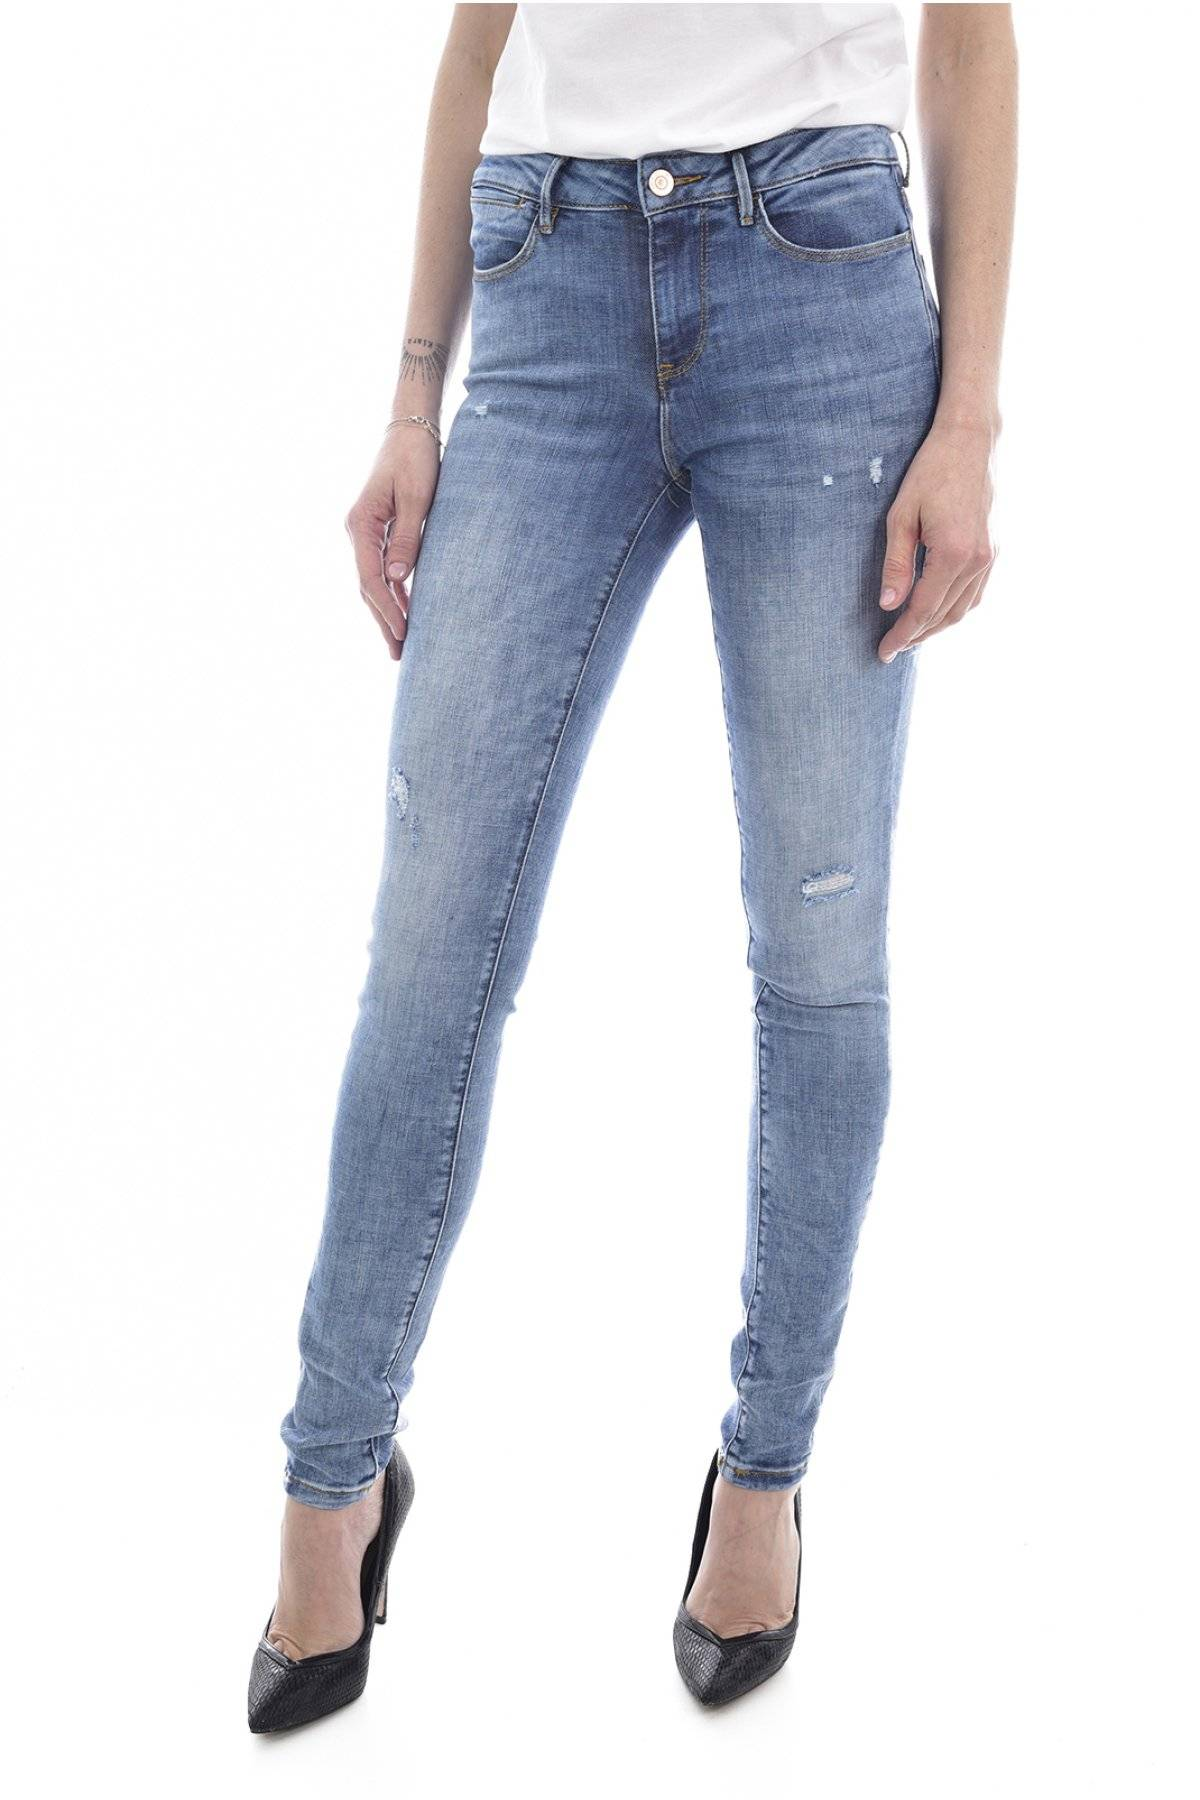 Guess jeans Jean Stretch Ultra Skinny Jegging Mid  -  Guess Jeans